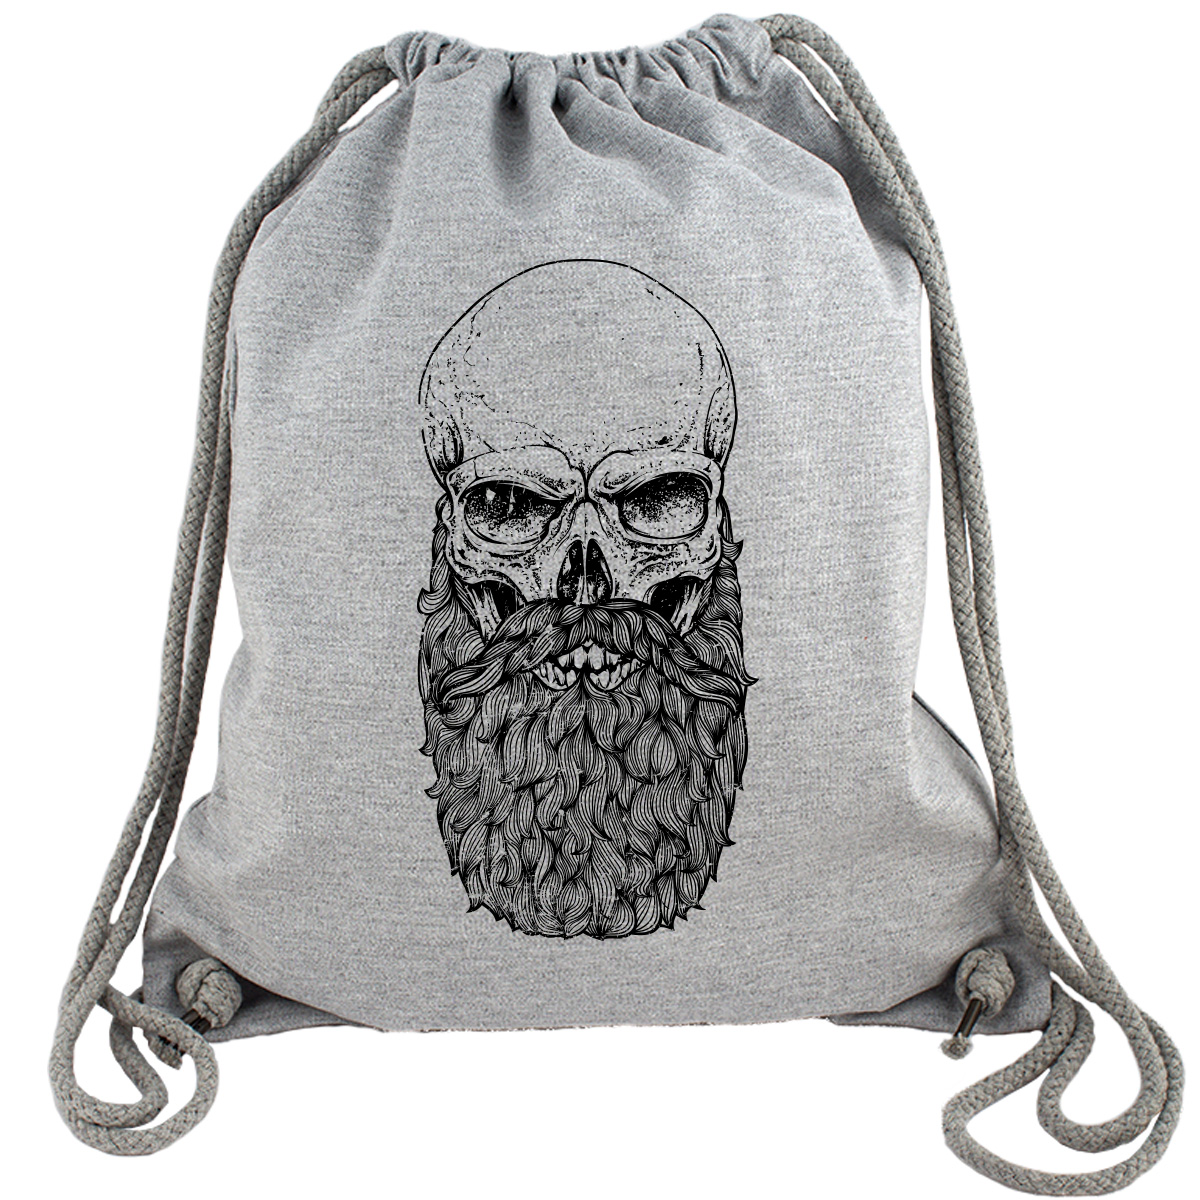 Skull Beard - Gym Bag Turnbeutel